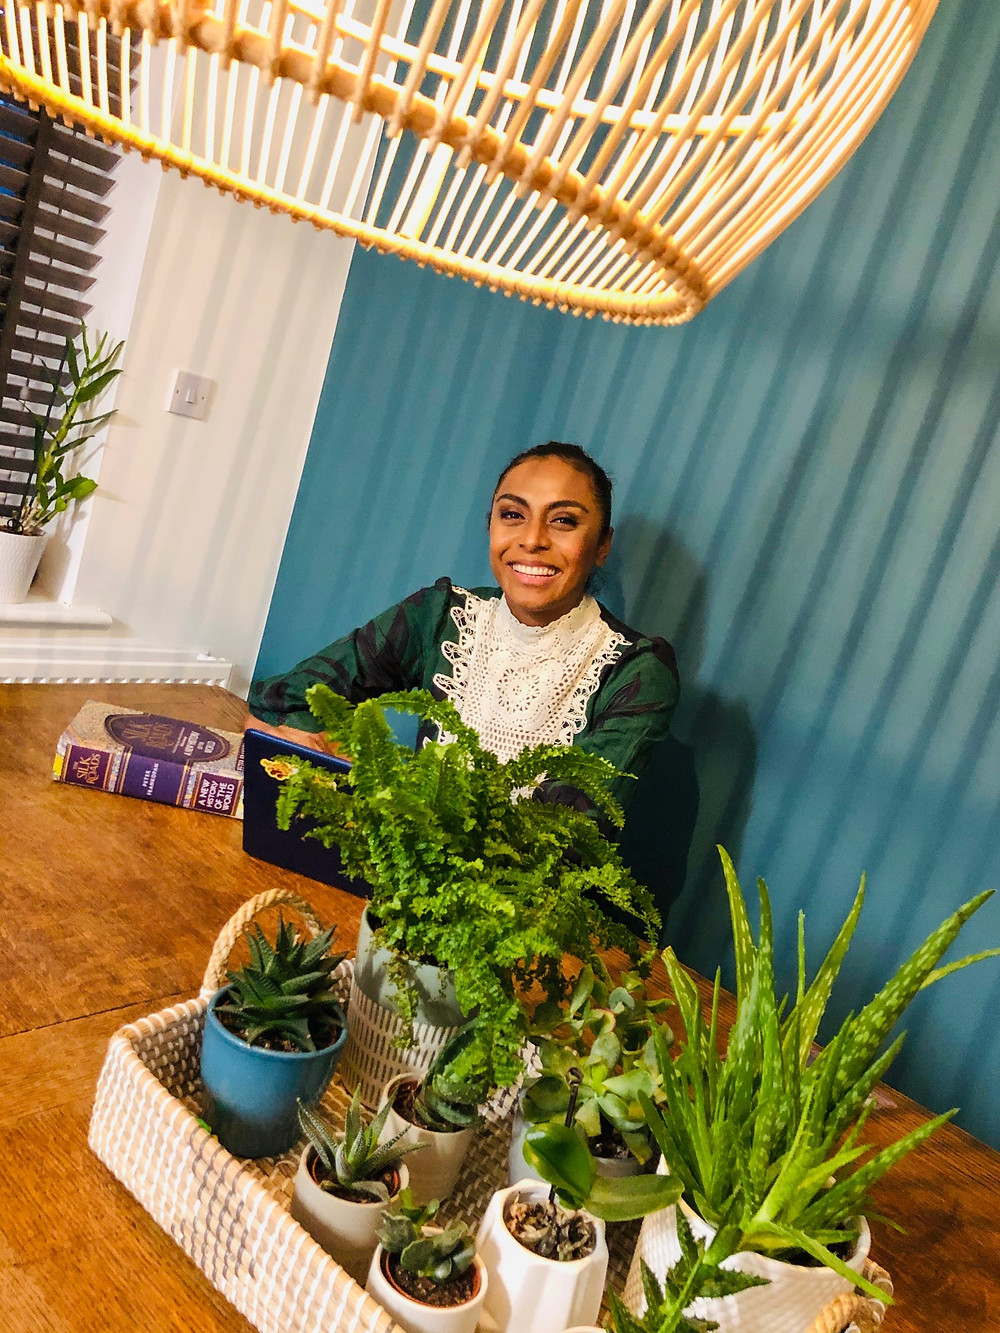 Isabella is sitting at the end of a wooden dining table which has a fibre basket of potted plants in the middle of it. She has a book with a purple cover on the table in front of her, and her laptop is partially seen behind one of the potted plants. She has on a green dress with a white embroidered collar. The feature wall behind her is topaz in colour and there is a window with grey blinds to her left. At the very top left corner of the picture is a partial image of a bamboo lampshade.